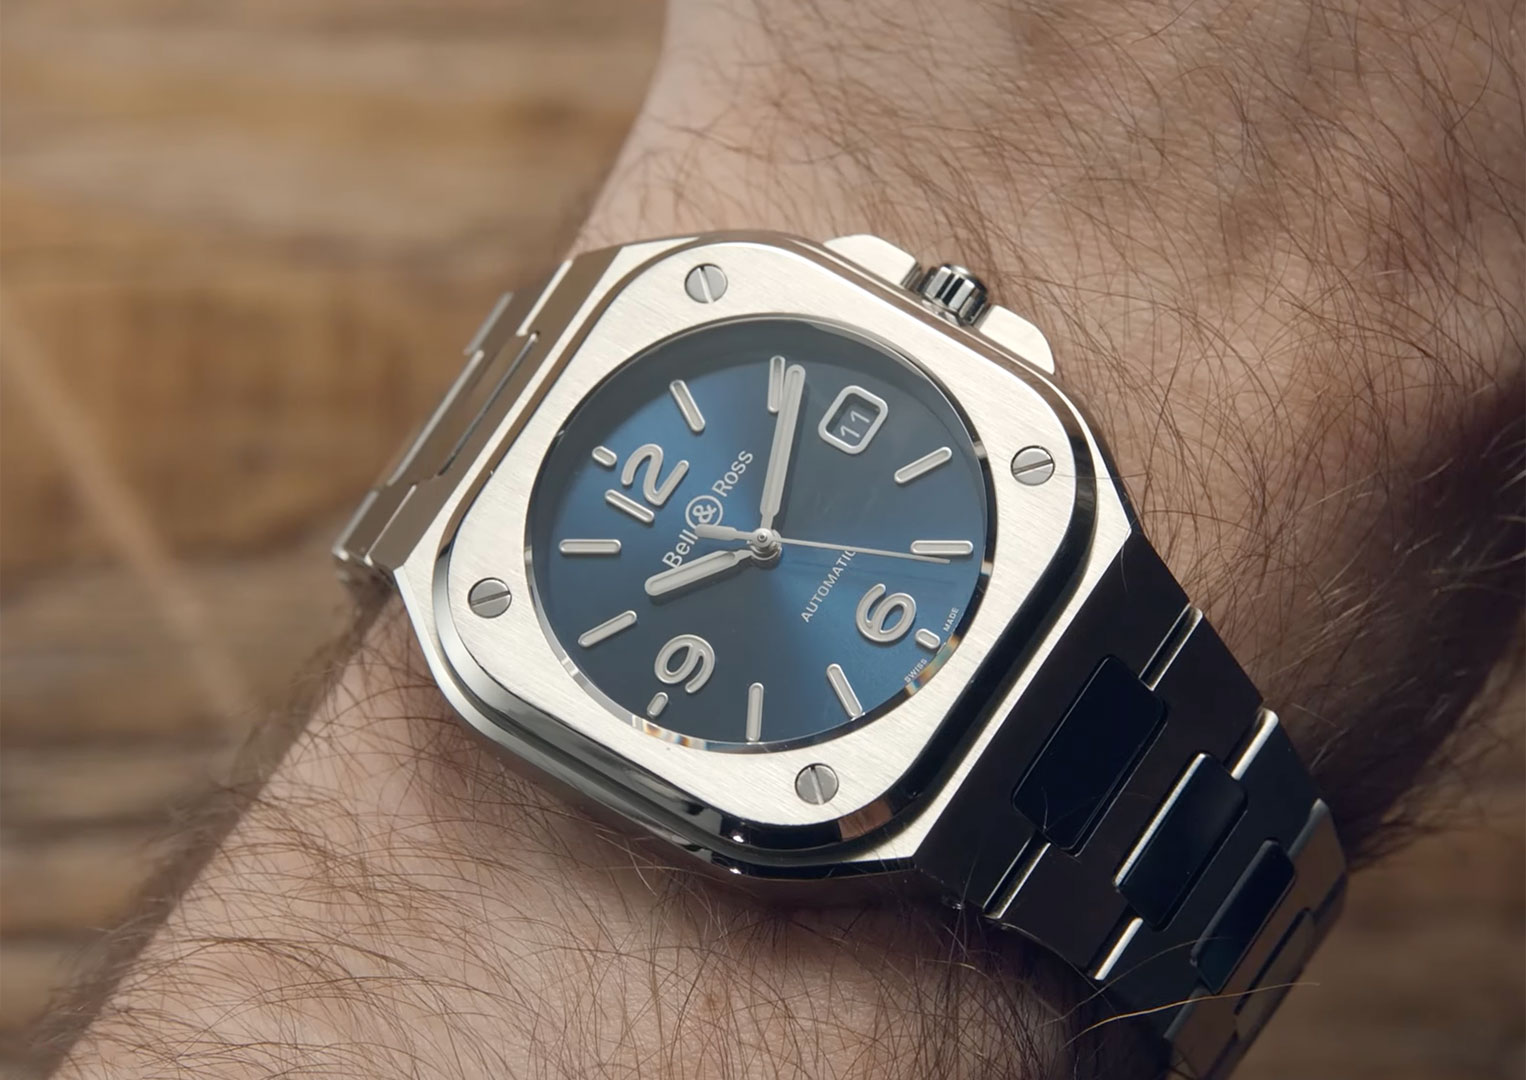 Bell & Ross was founded by Carlos Rosillo and Bruno Belamich in 1992